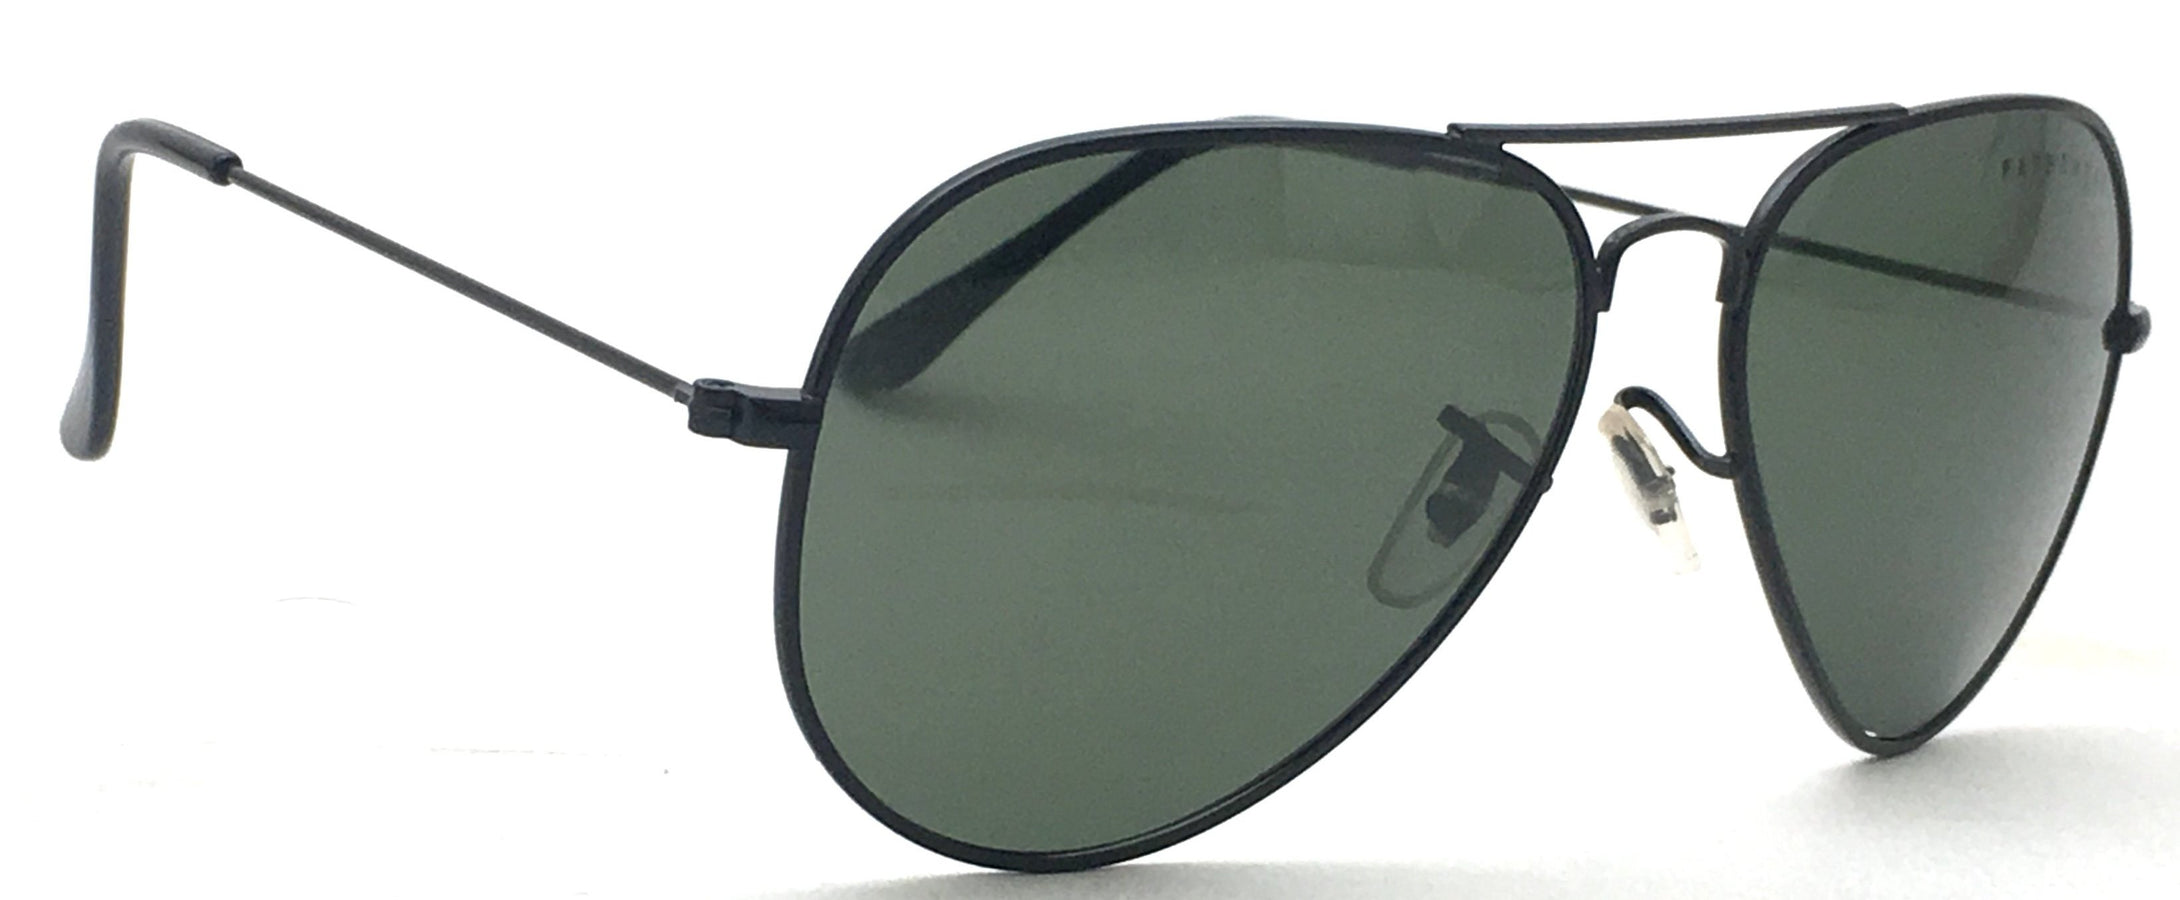 Farenheit Aviator Polarised Sunglasses | Fa-4061-C2P|